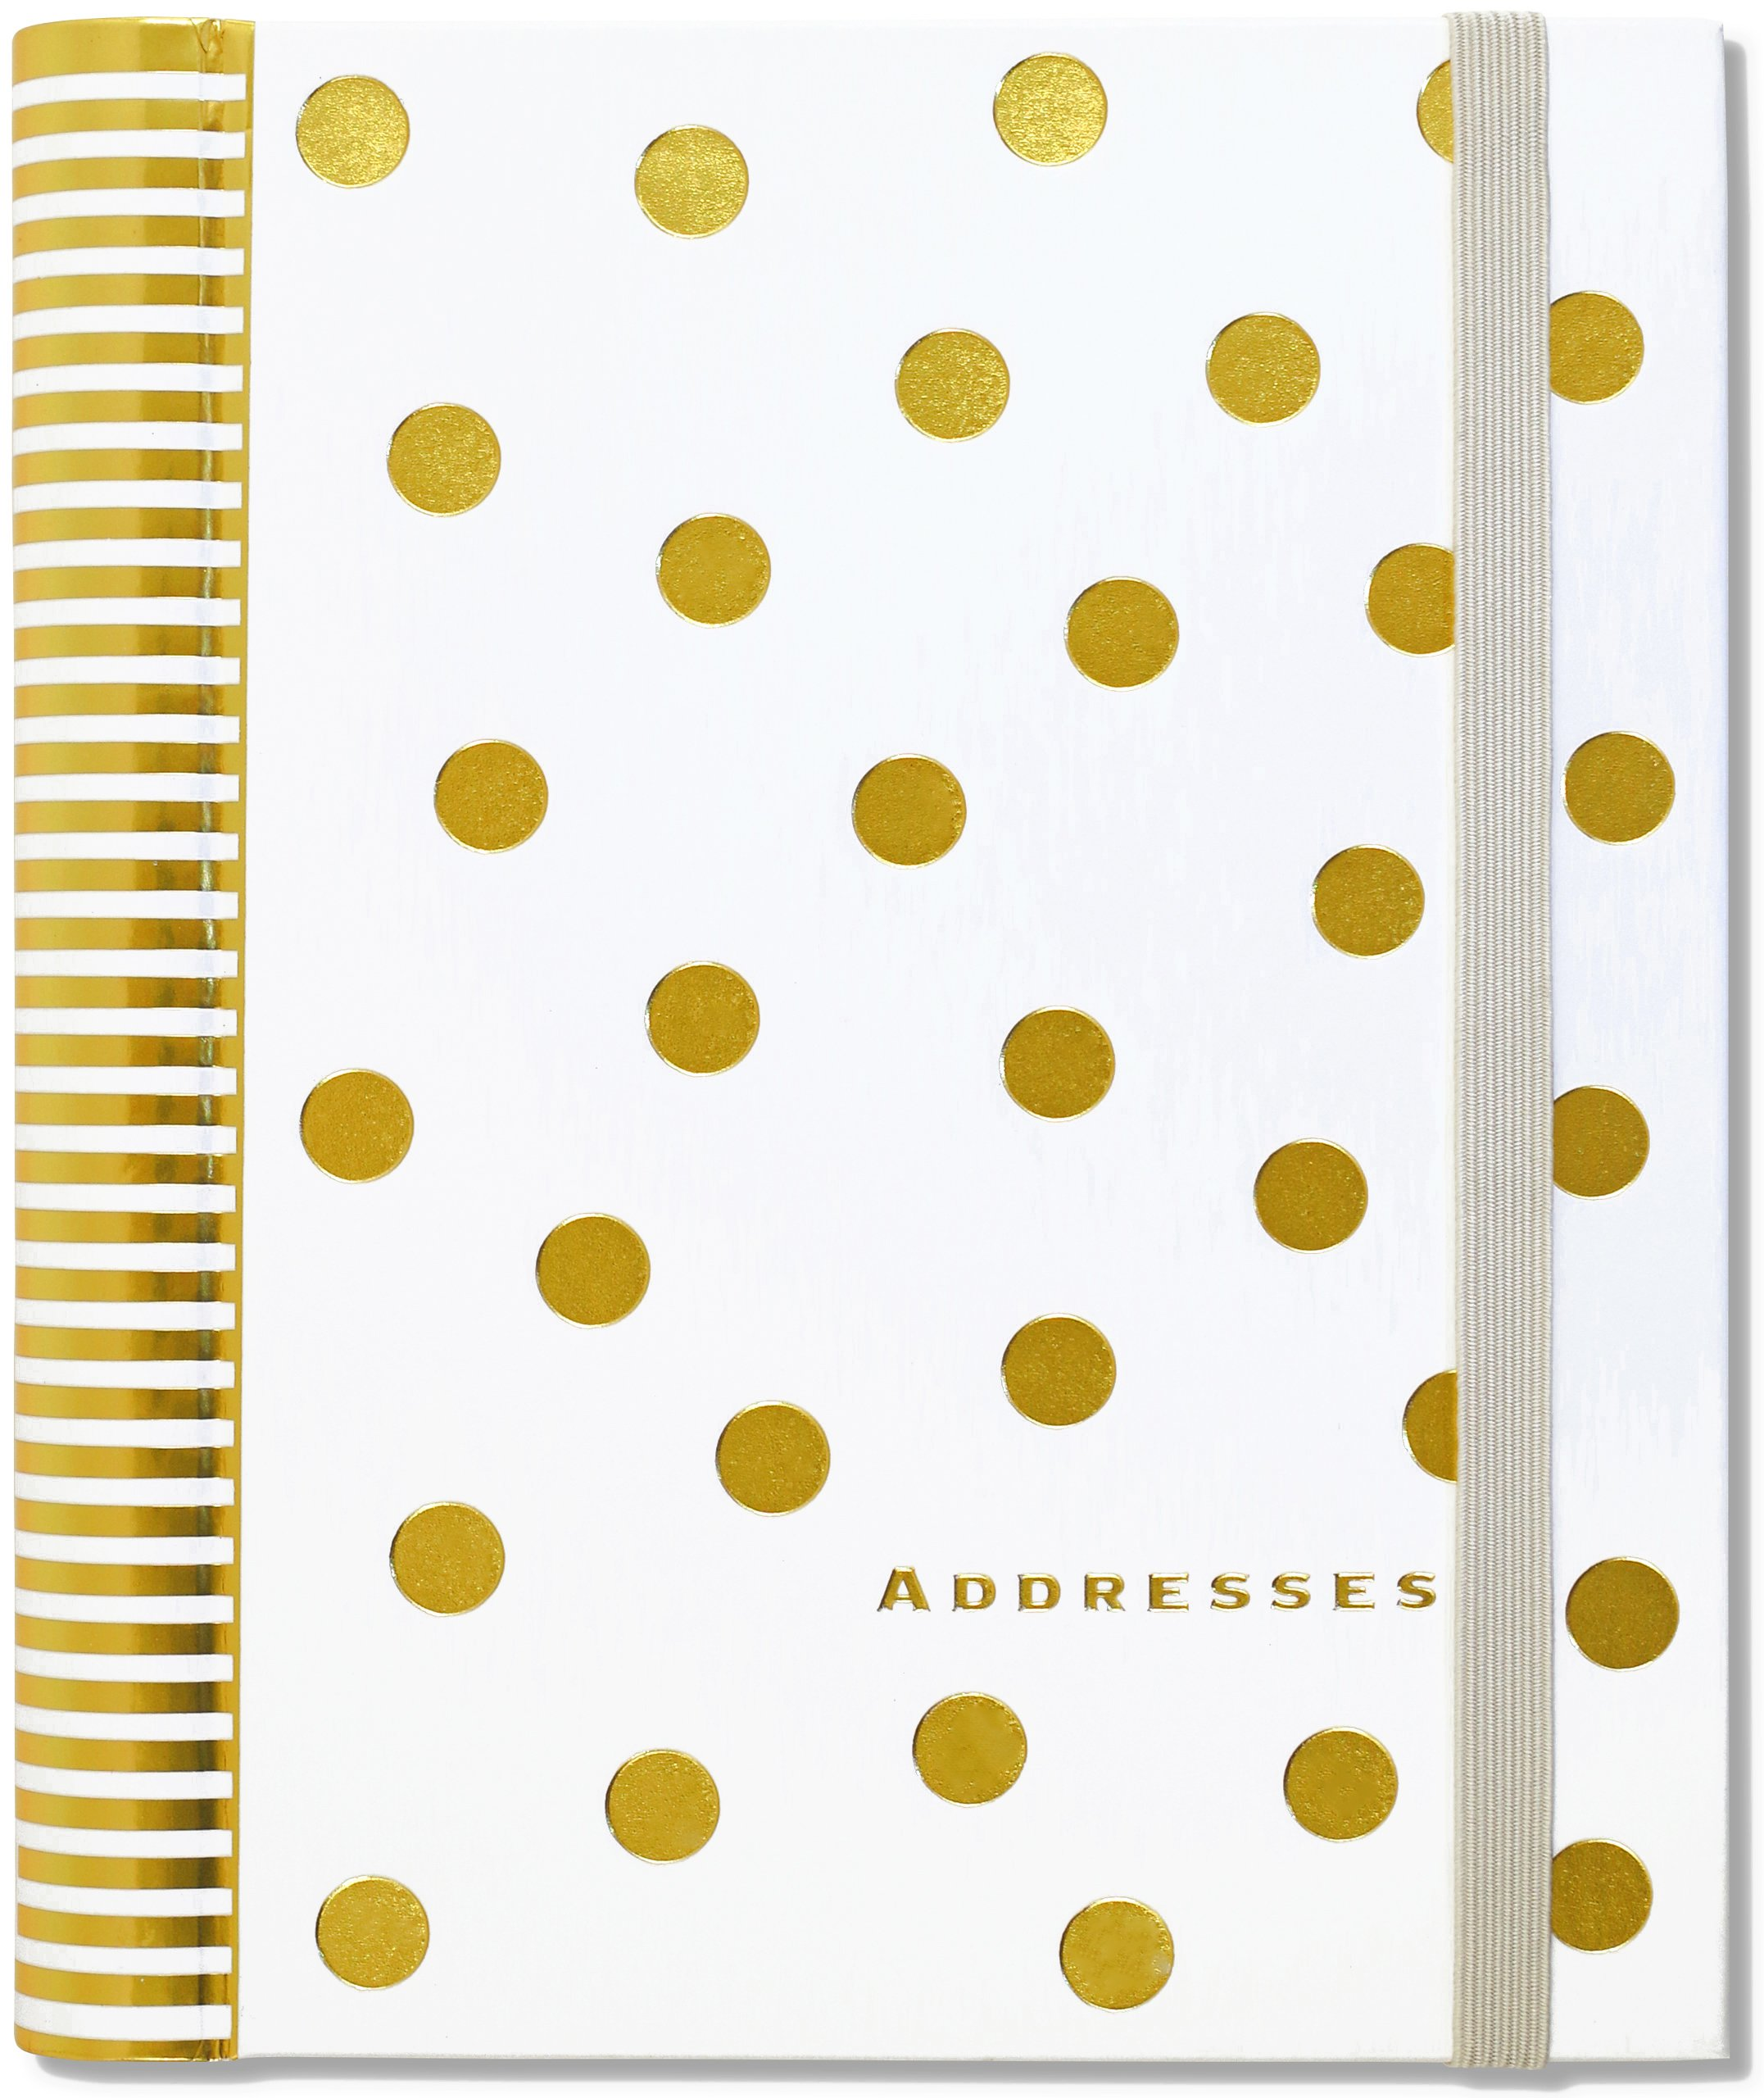 Gold Dots Large Address Book product image